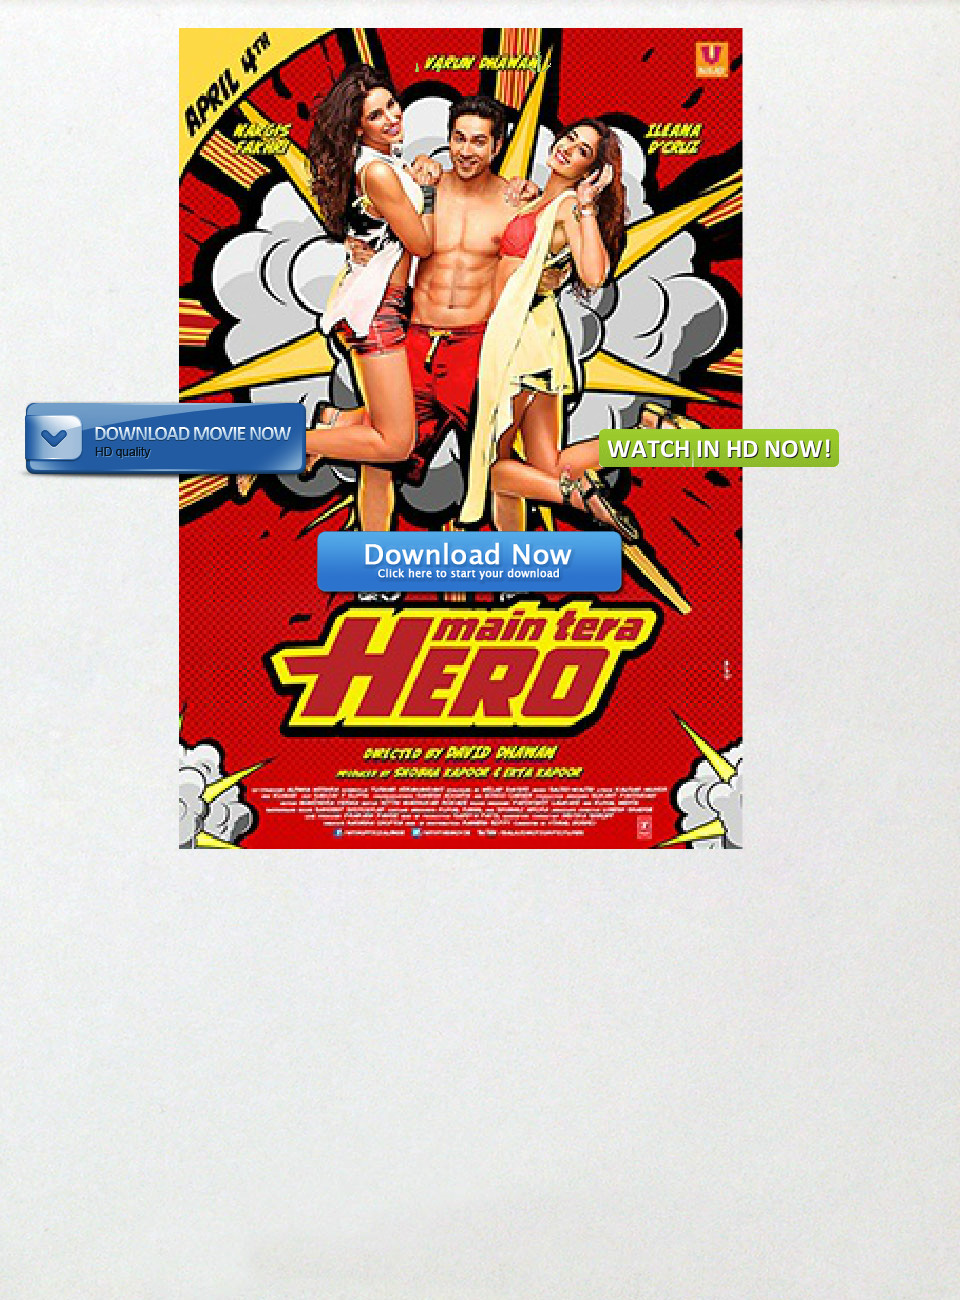 main tera hero 2014 full hd movie online text images music